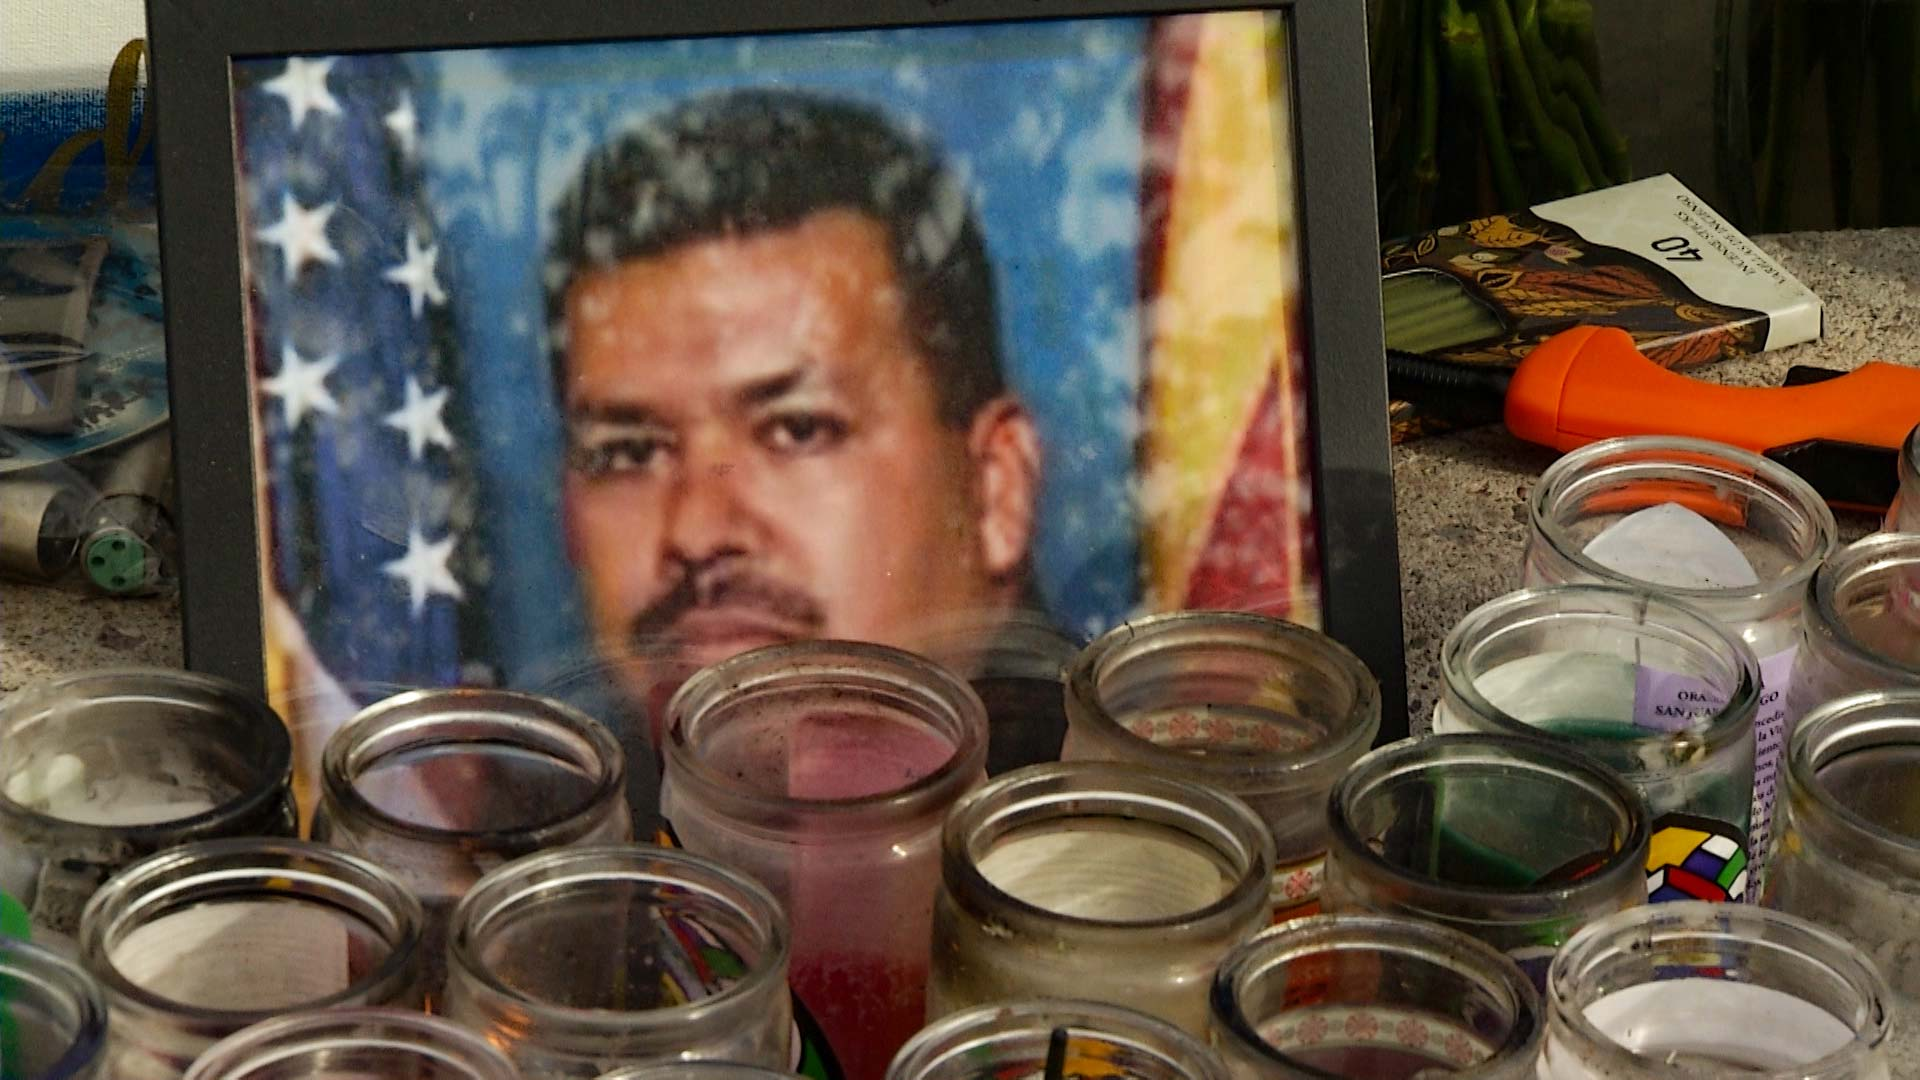 Candles burning to remember Jesus Cordova, a Nogales, Arizona, police officer killed responding to an emergency call April 27, 2018, file photo.